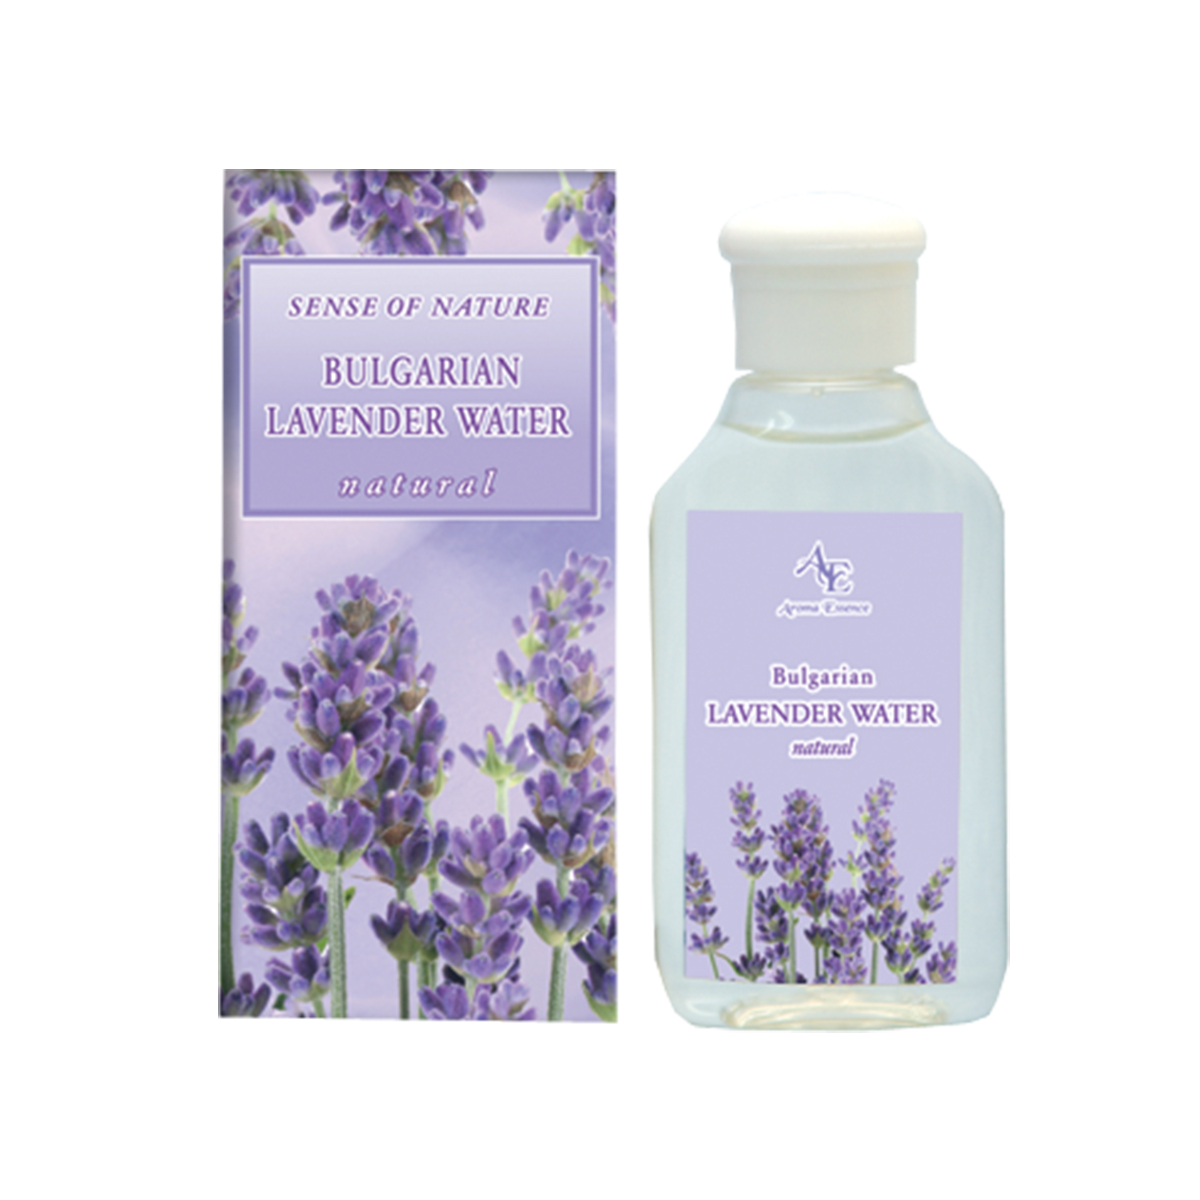 Natural Lavender Water - 50 ml.